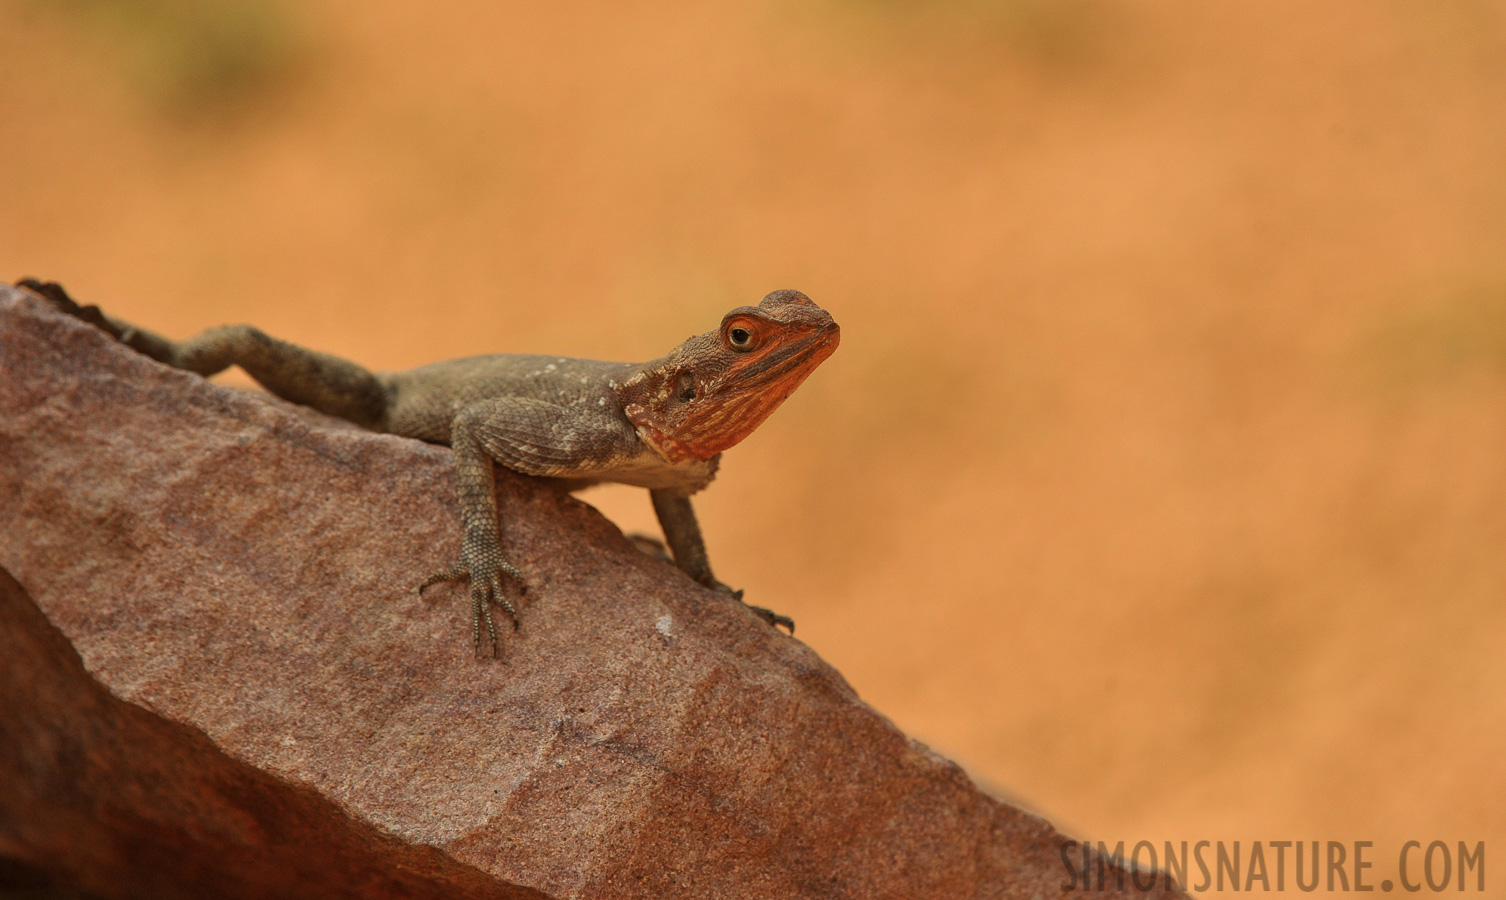 Agama planiceps [400 mm, 1/800 sec at f / 8.0, ISO 1000]